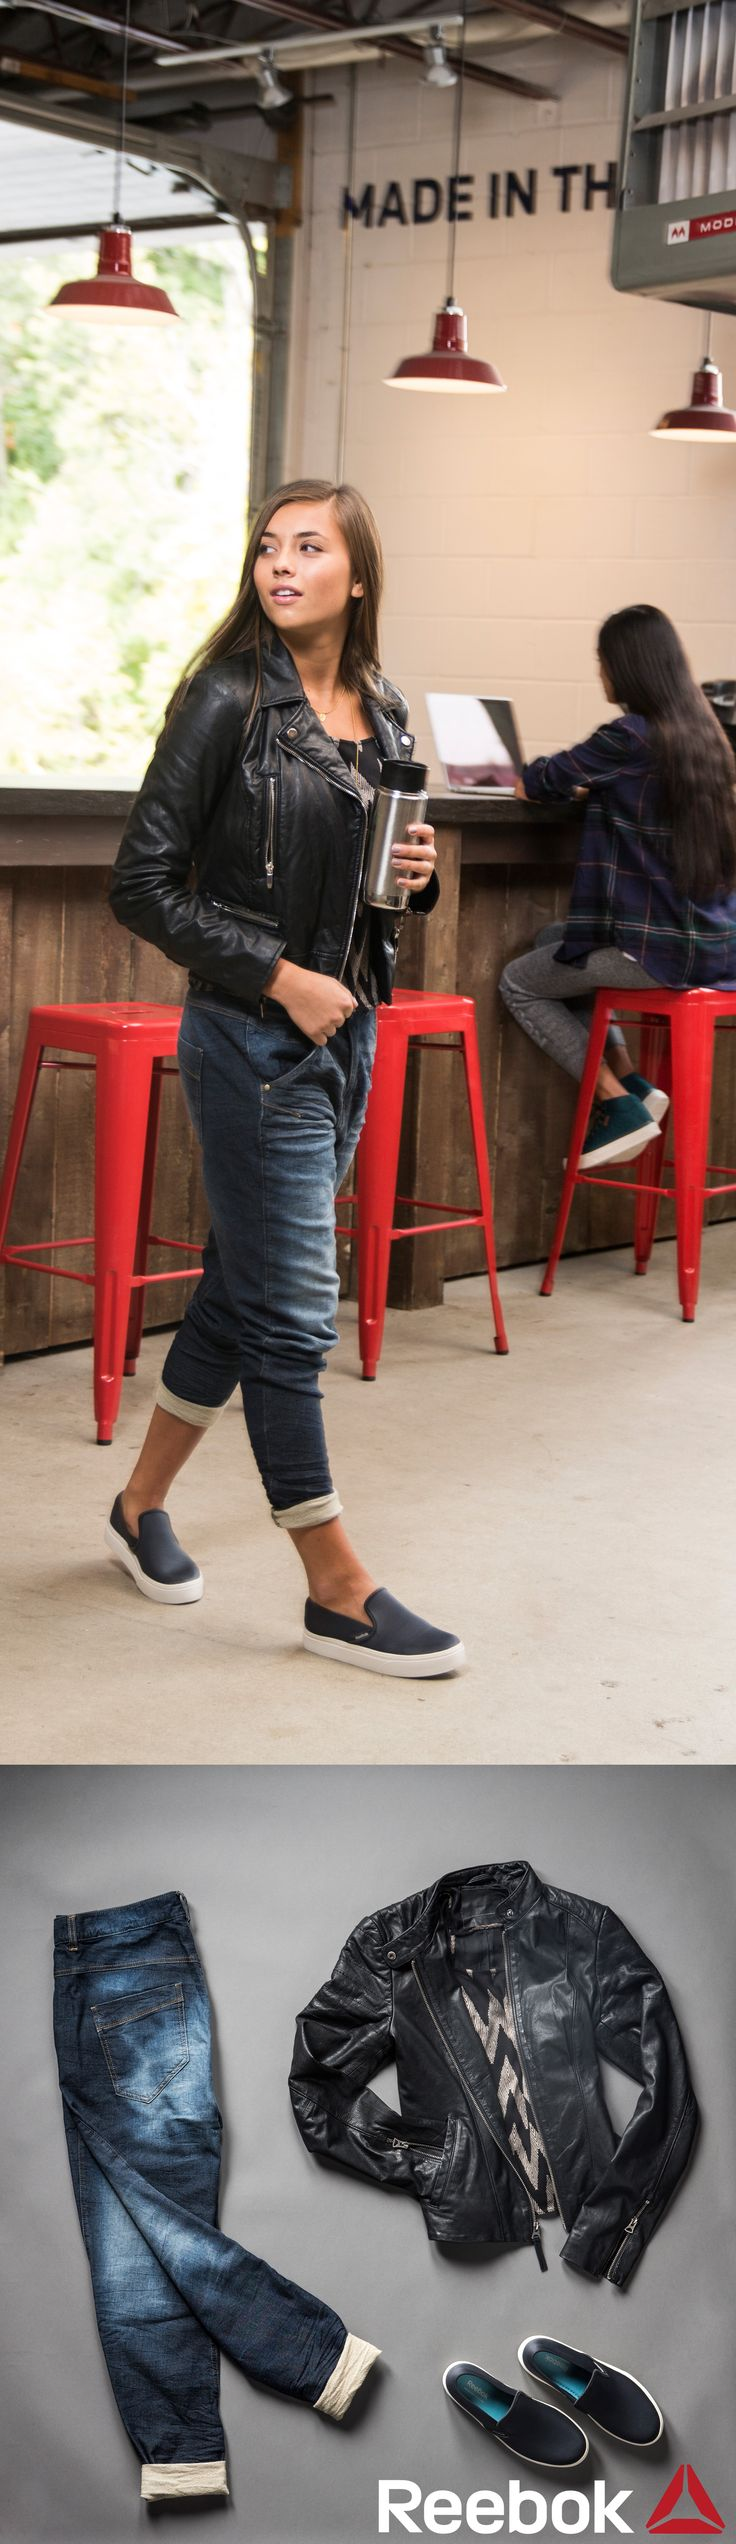 Stay comfortable on Casual Friday at the office in Reebok studio denim jogger pants. Pair these trendy pants with slip on Skyscape sneakers and a fitted leather jacket.